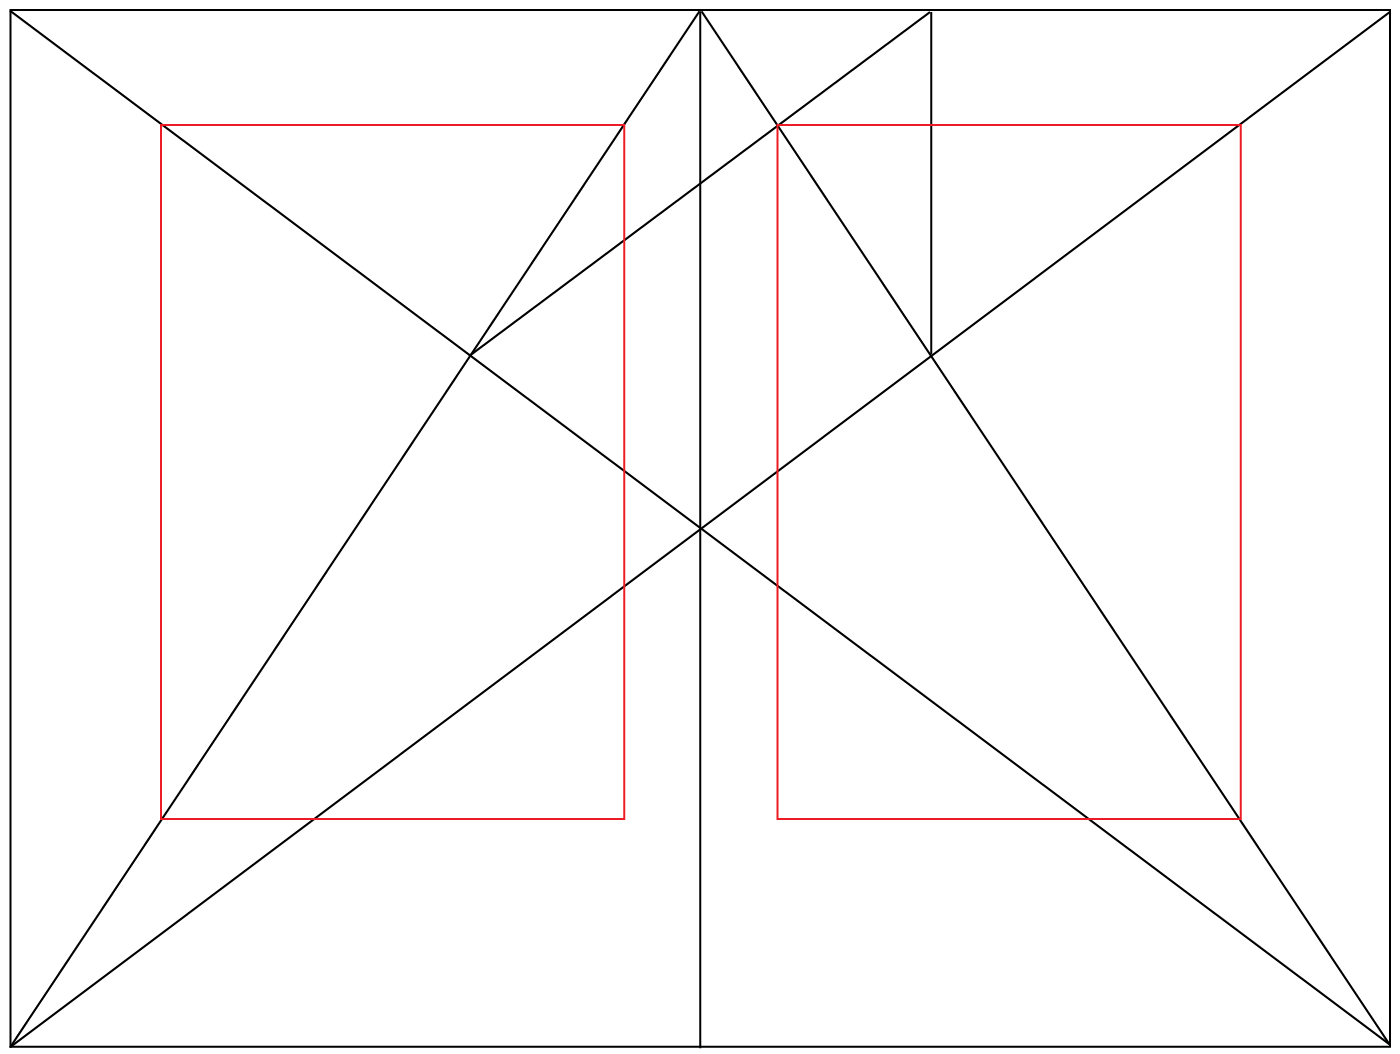 Harmonious Typography And Grids Tradecraft Medium Gutenberg Printing Press Diagram As The Suggests Van De Graaf Canon A Grid System Used By Typographers During Middle Ages